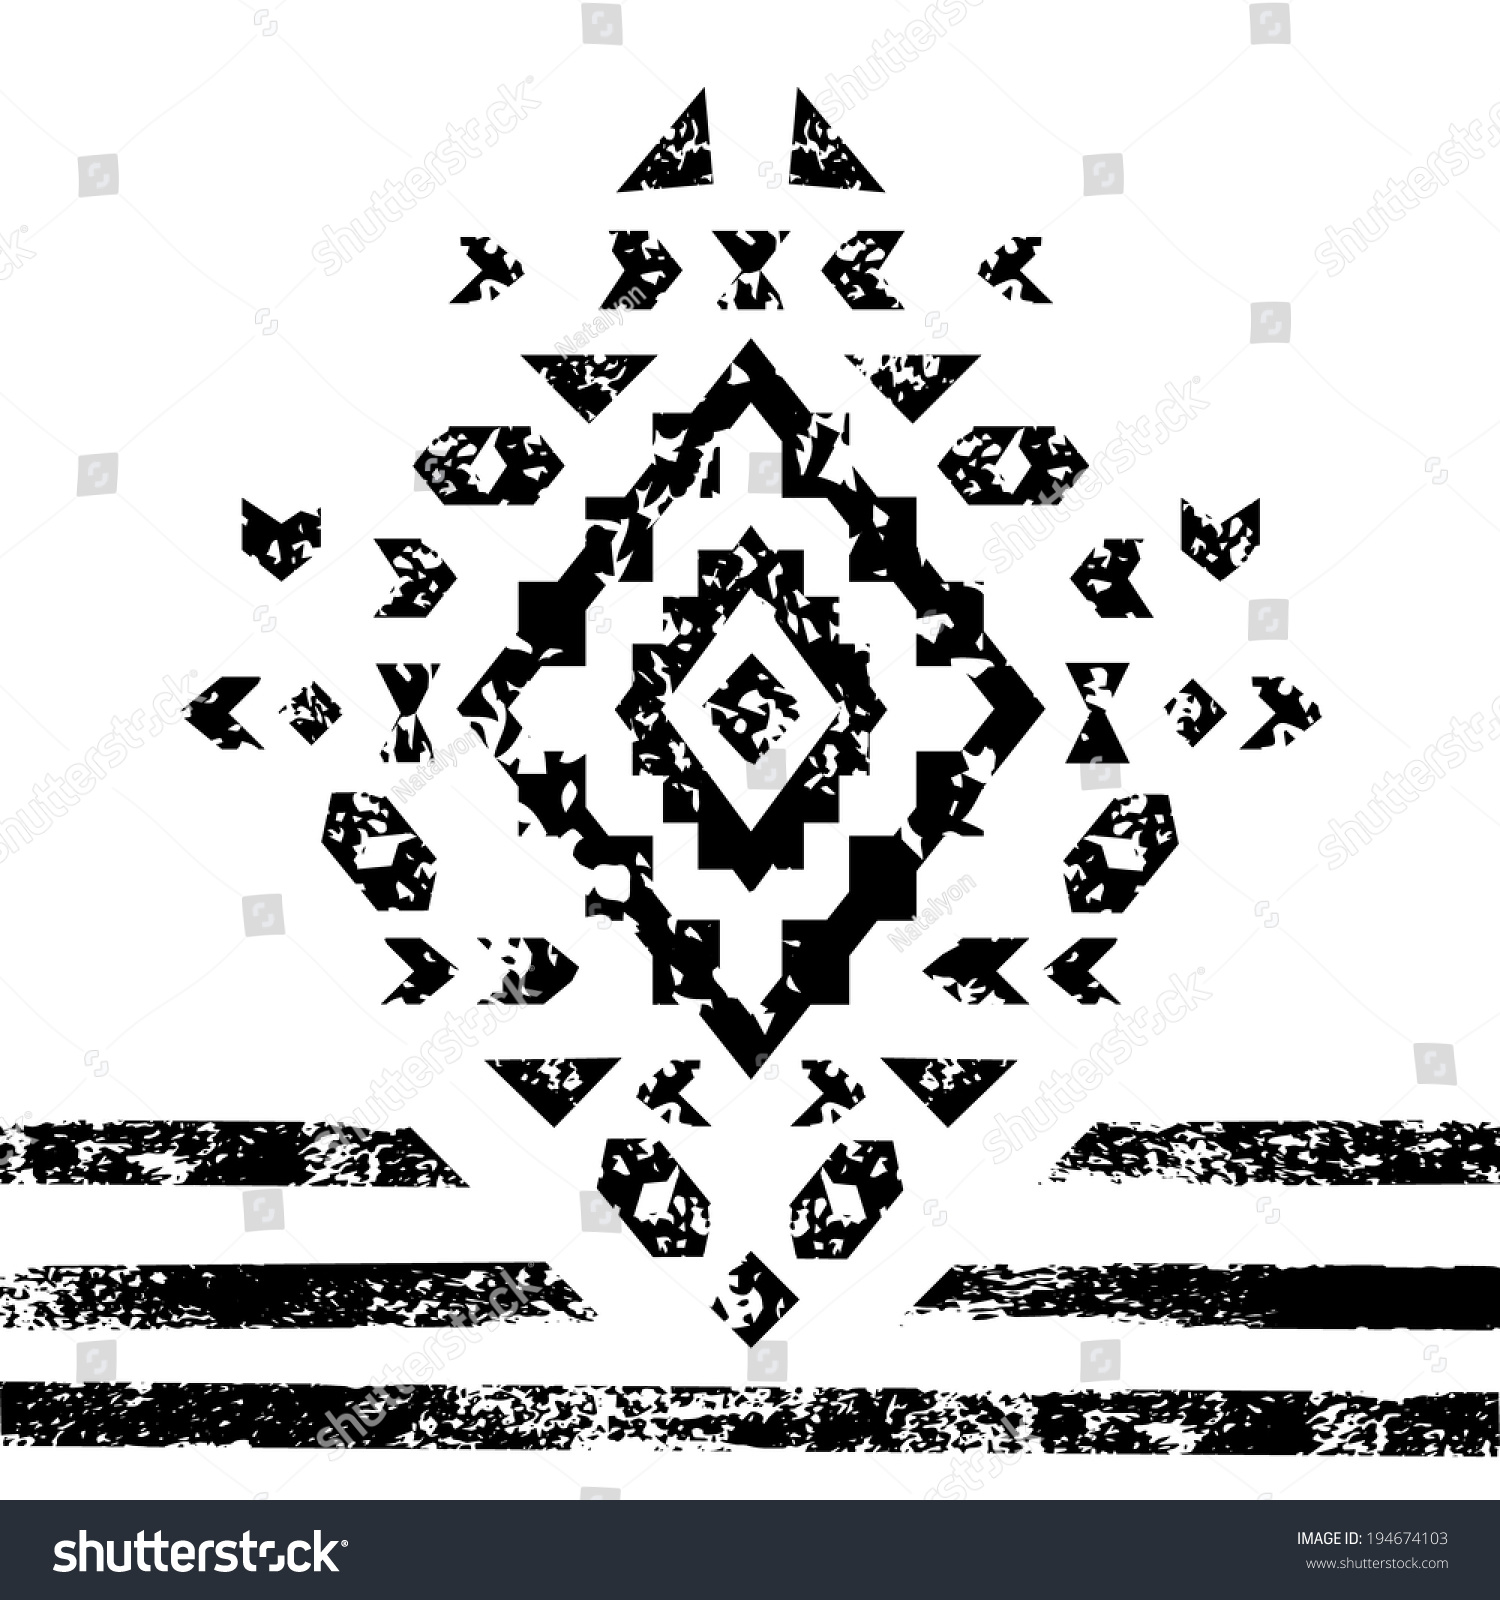 Black and white aged geometric aztec grunge ornament, vector